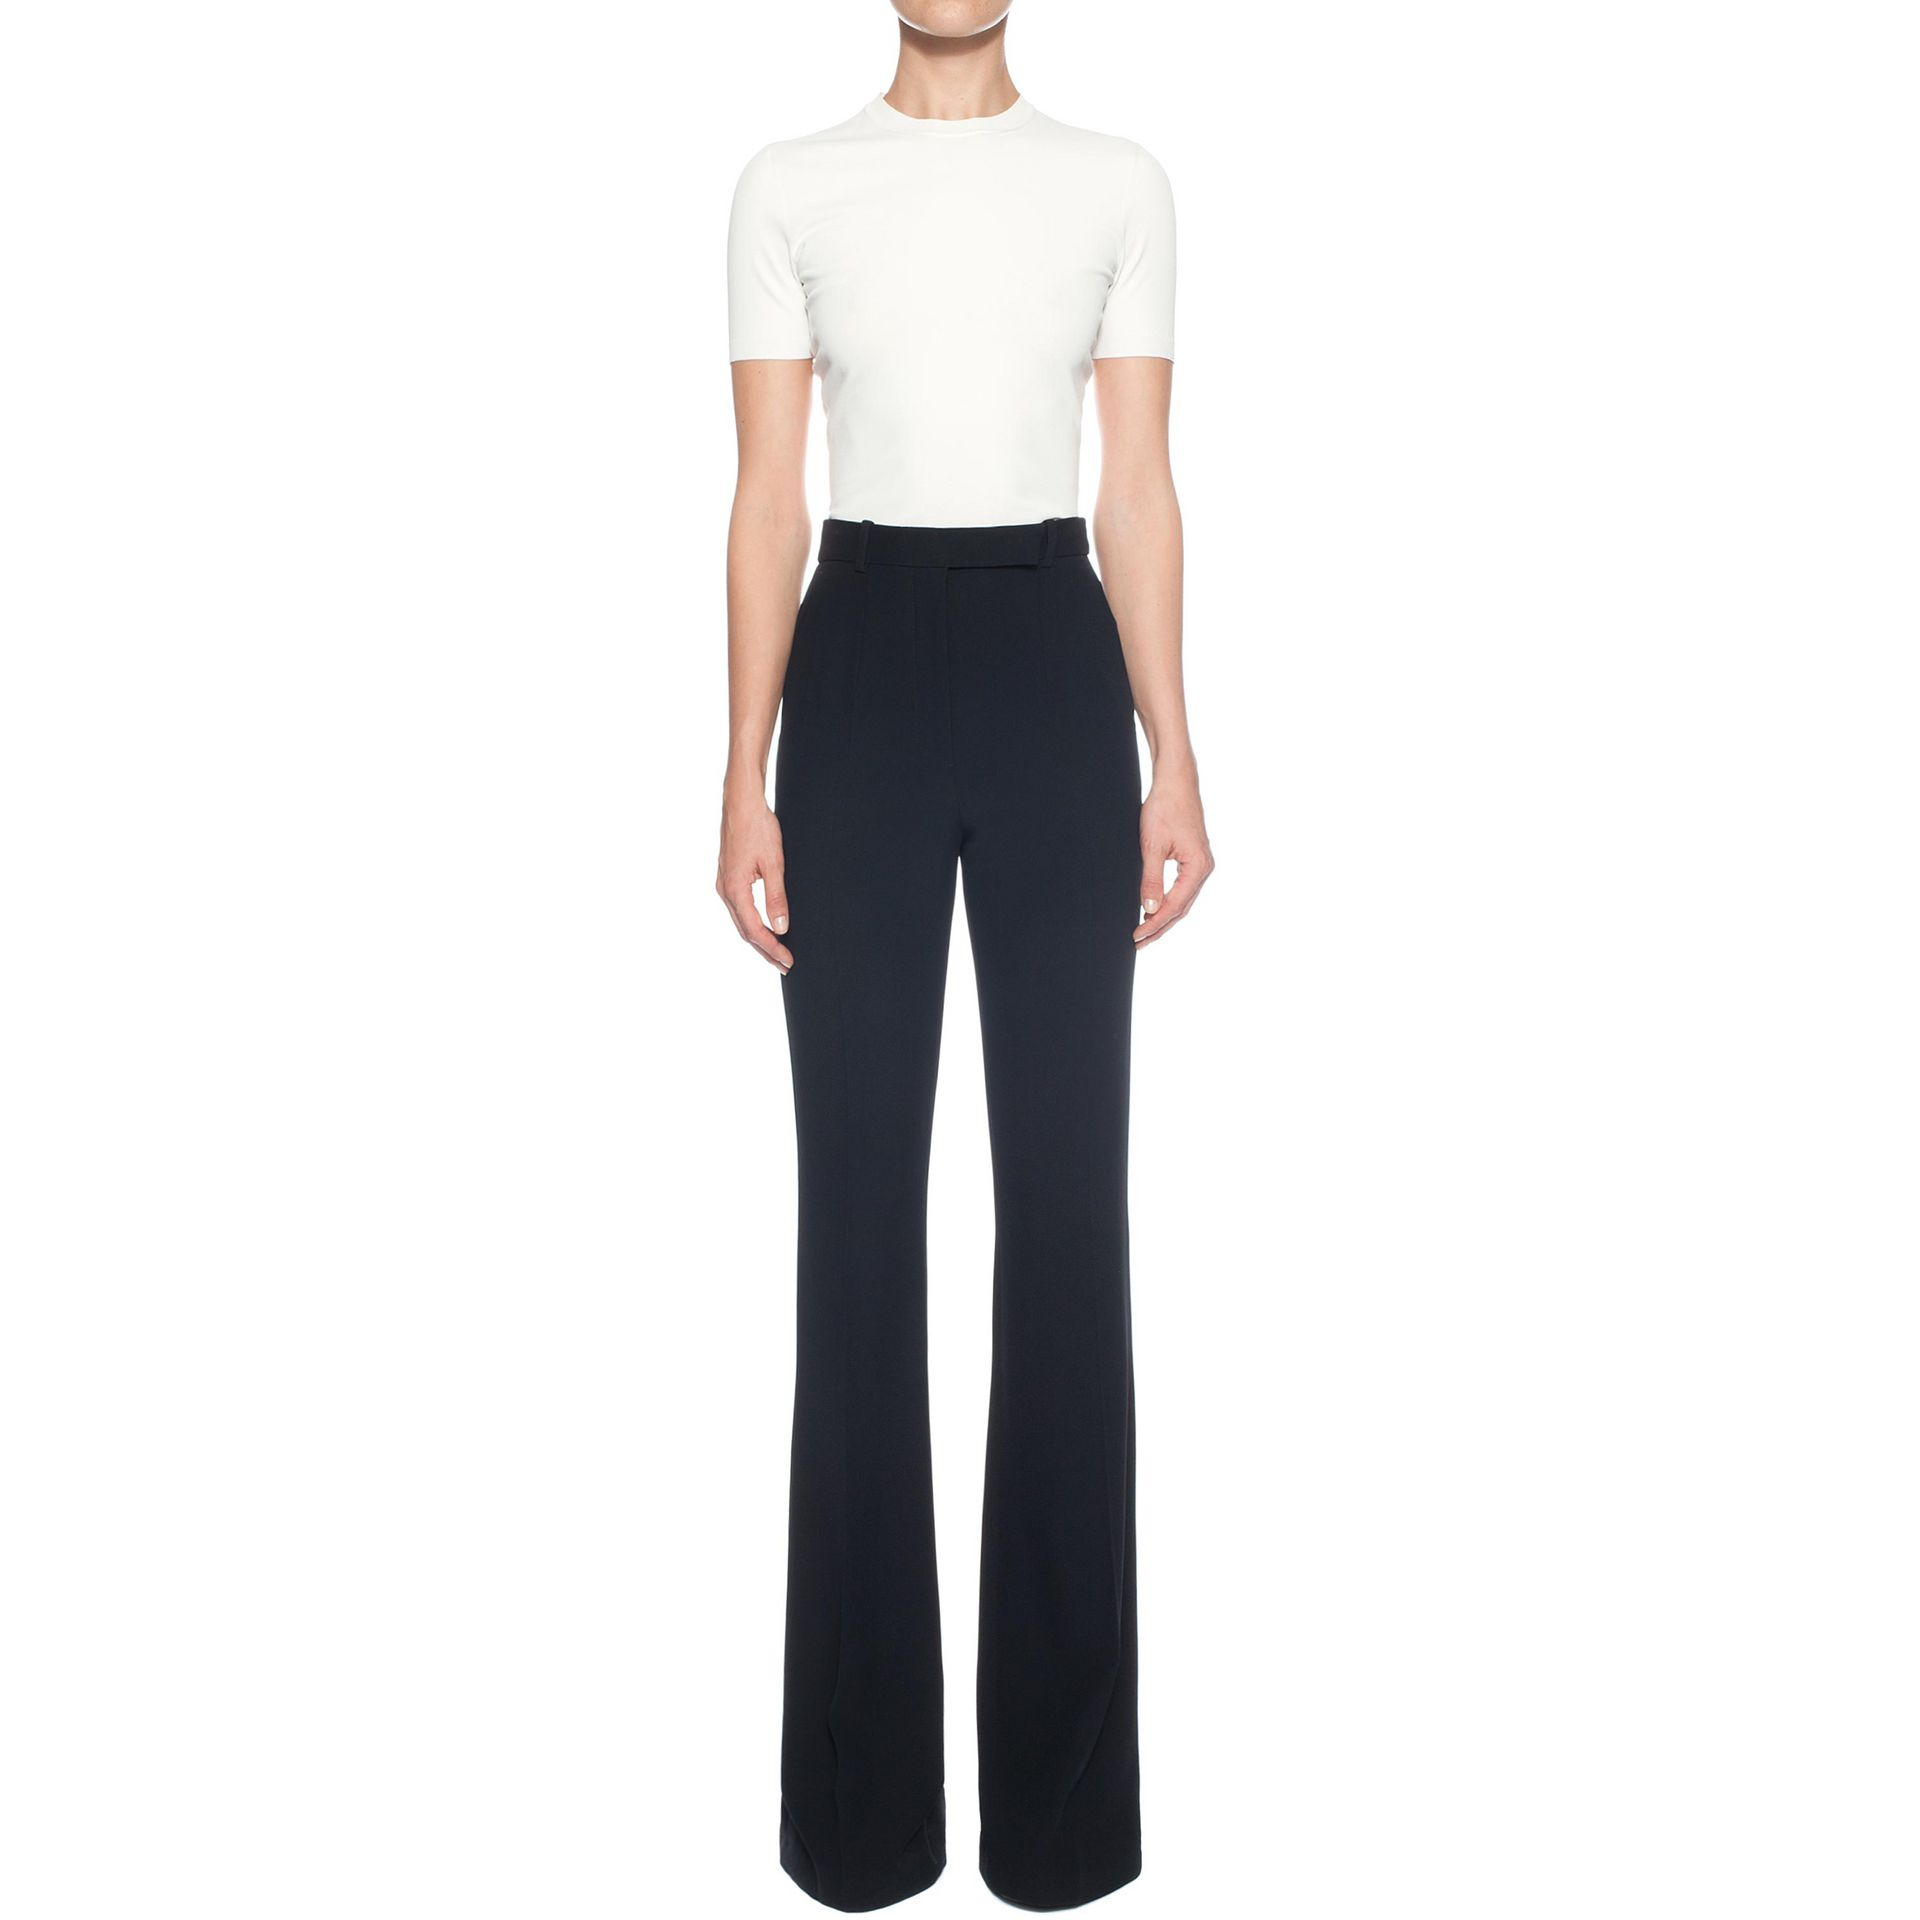 146c6325fca Alexander McQueen Highwaisted Bootcut Trousers in Black - Lyst